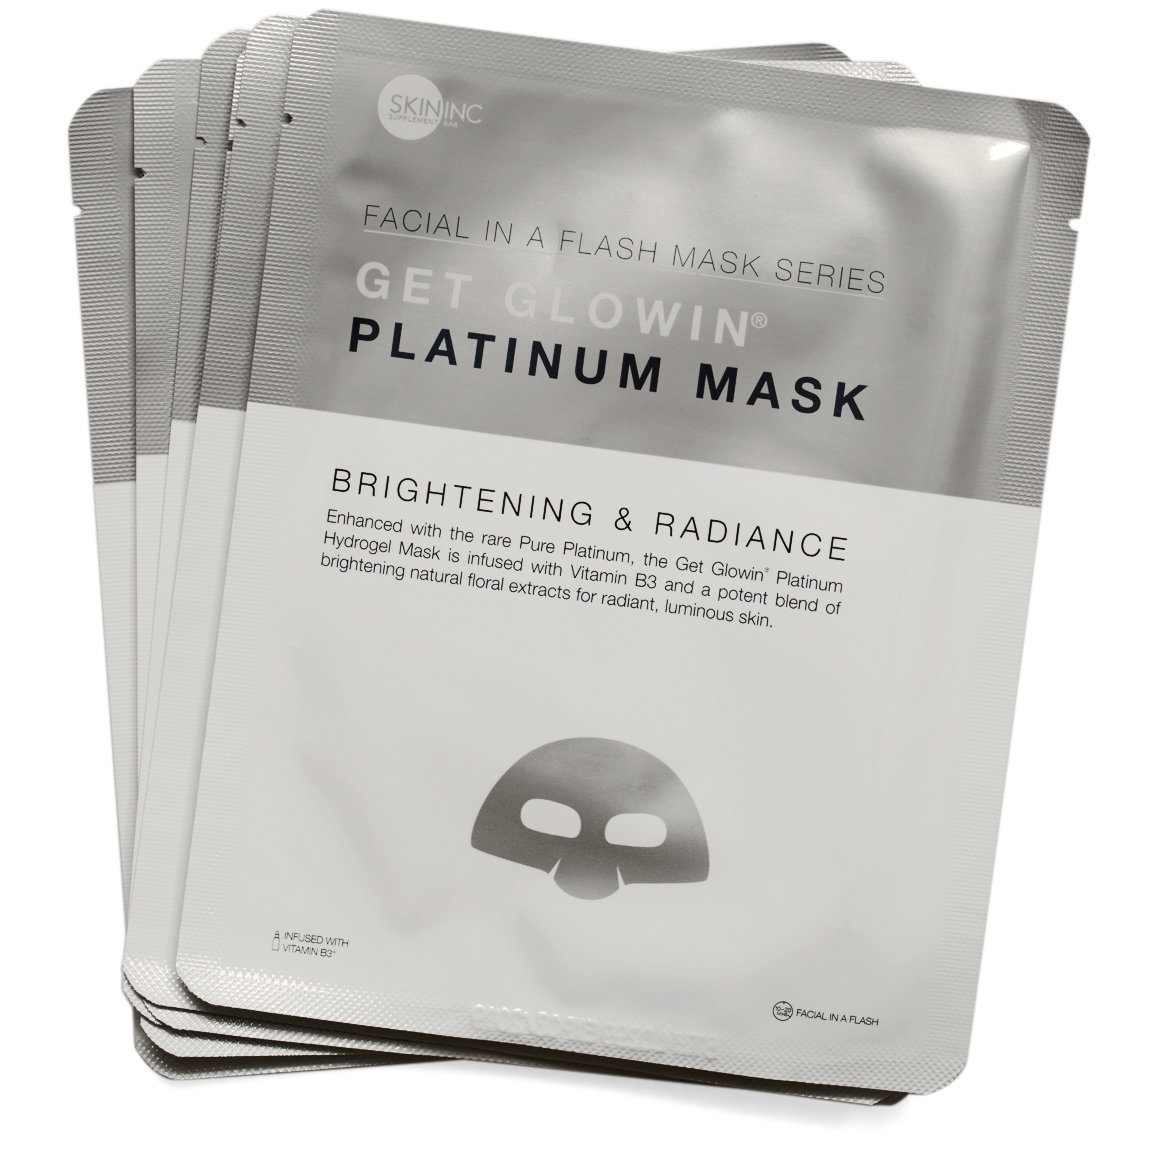 Skin Inc Supplement Bar Facial In-A-Flash Get Glowin Platinum Mask 3-Pack product swatch.